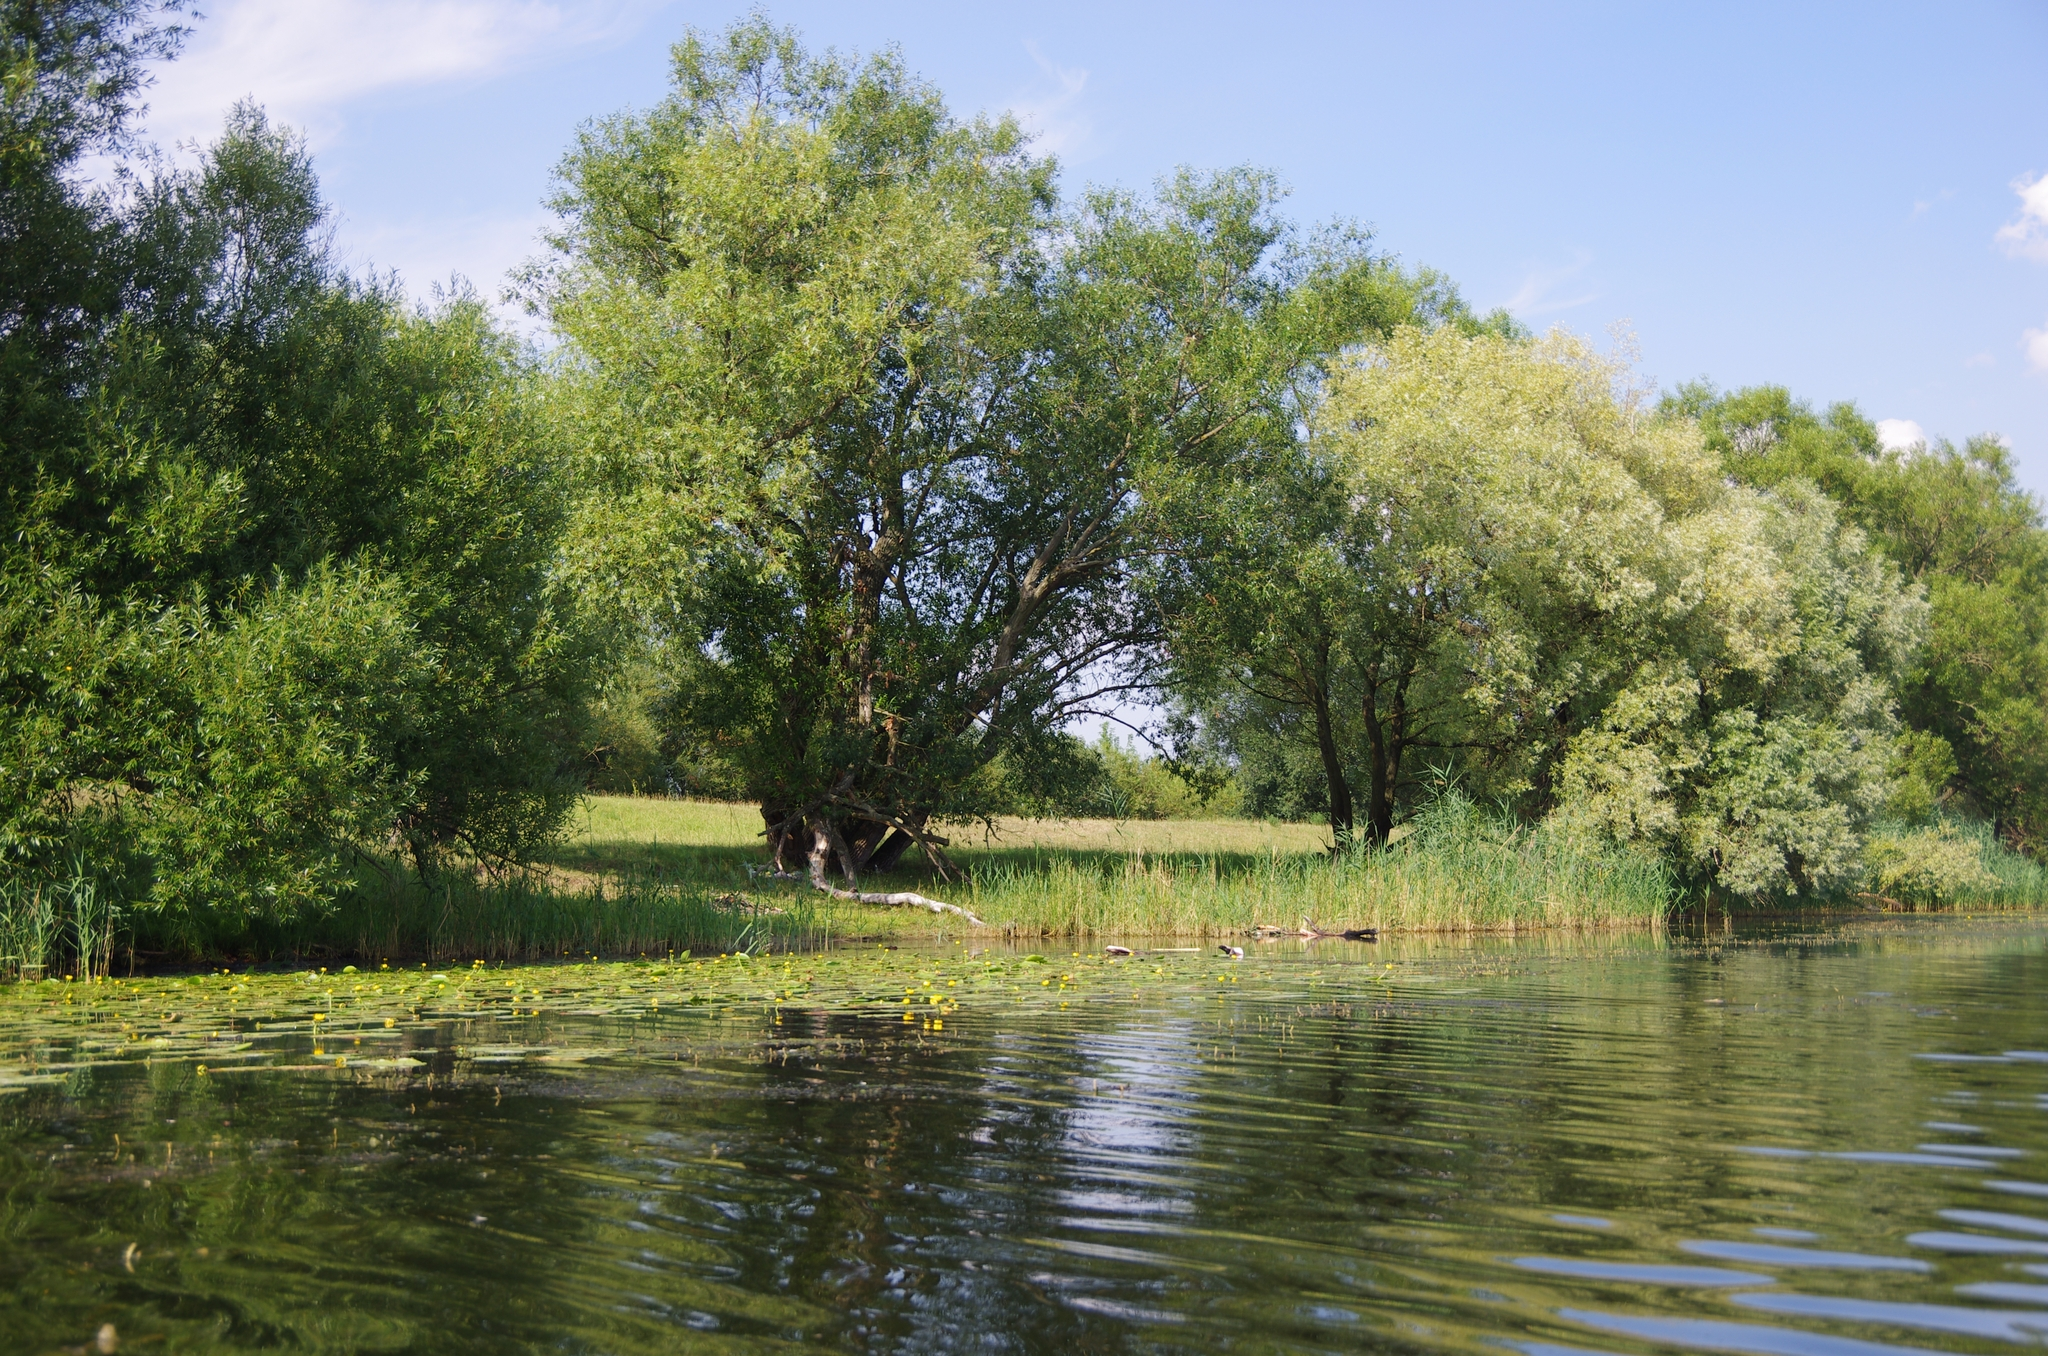 kayaking-odra-east-and-west_15-26-43_25-07-2016